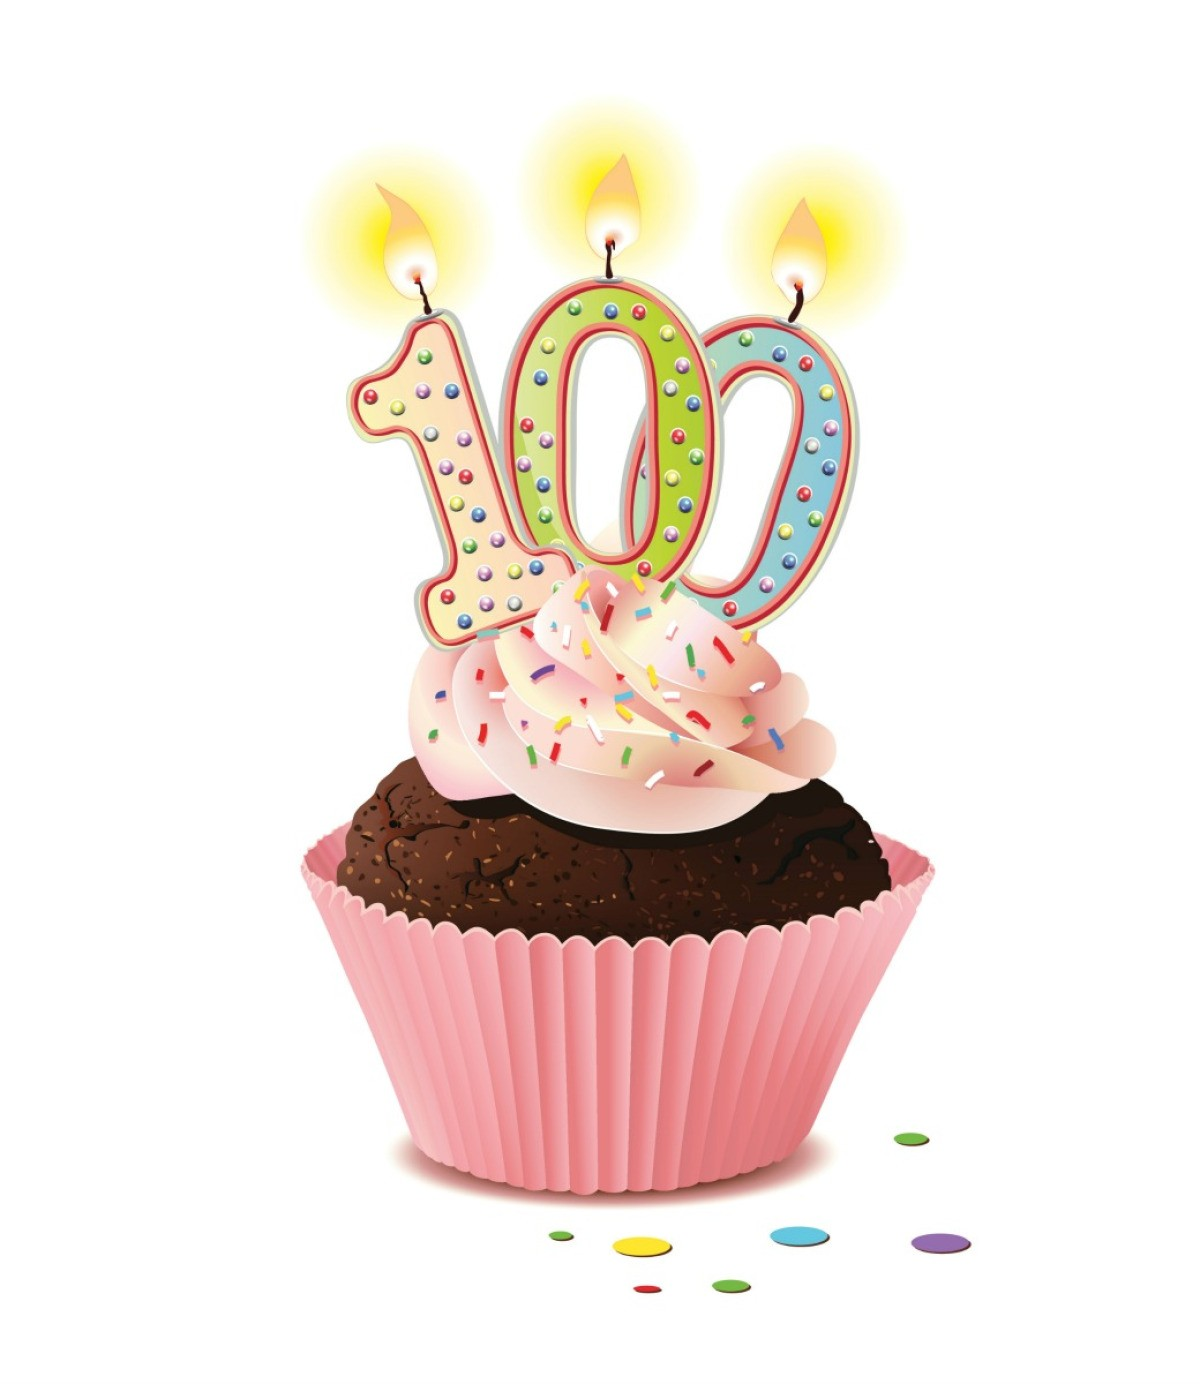 A Cupcake For 100th Birthday